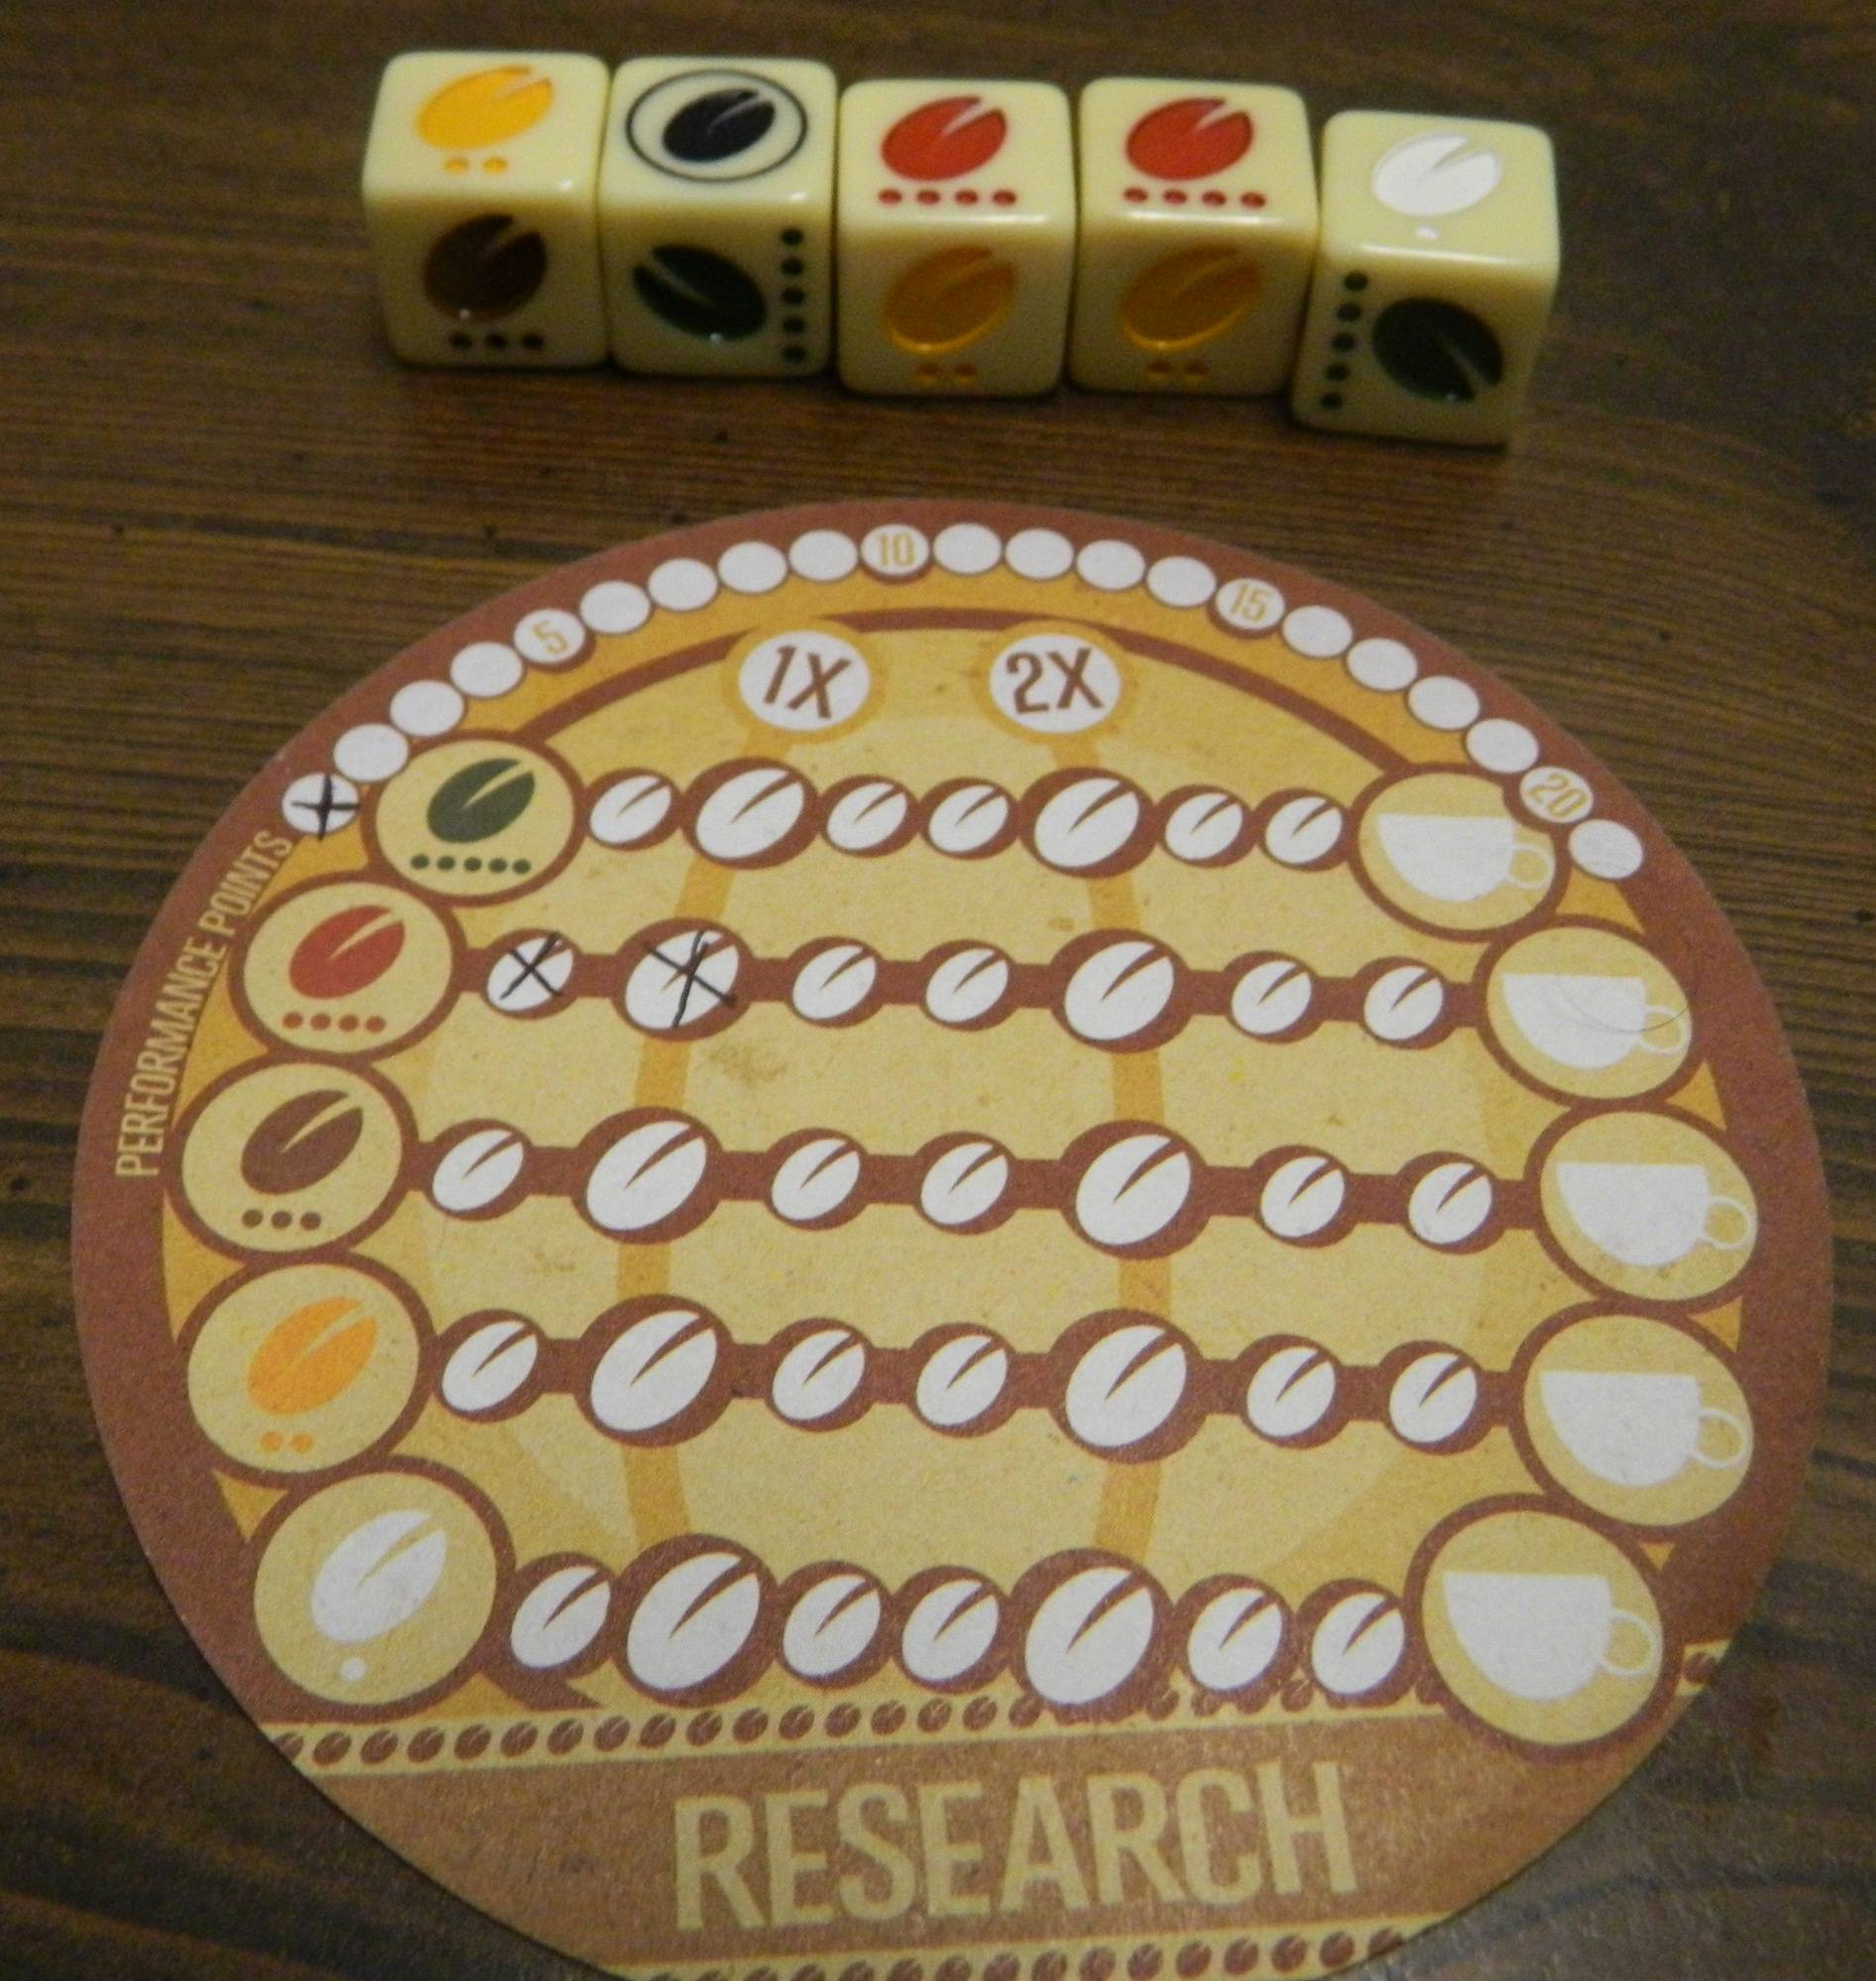 VivaJava: The Coffee Game: The Dice Game Review and Rules